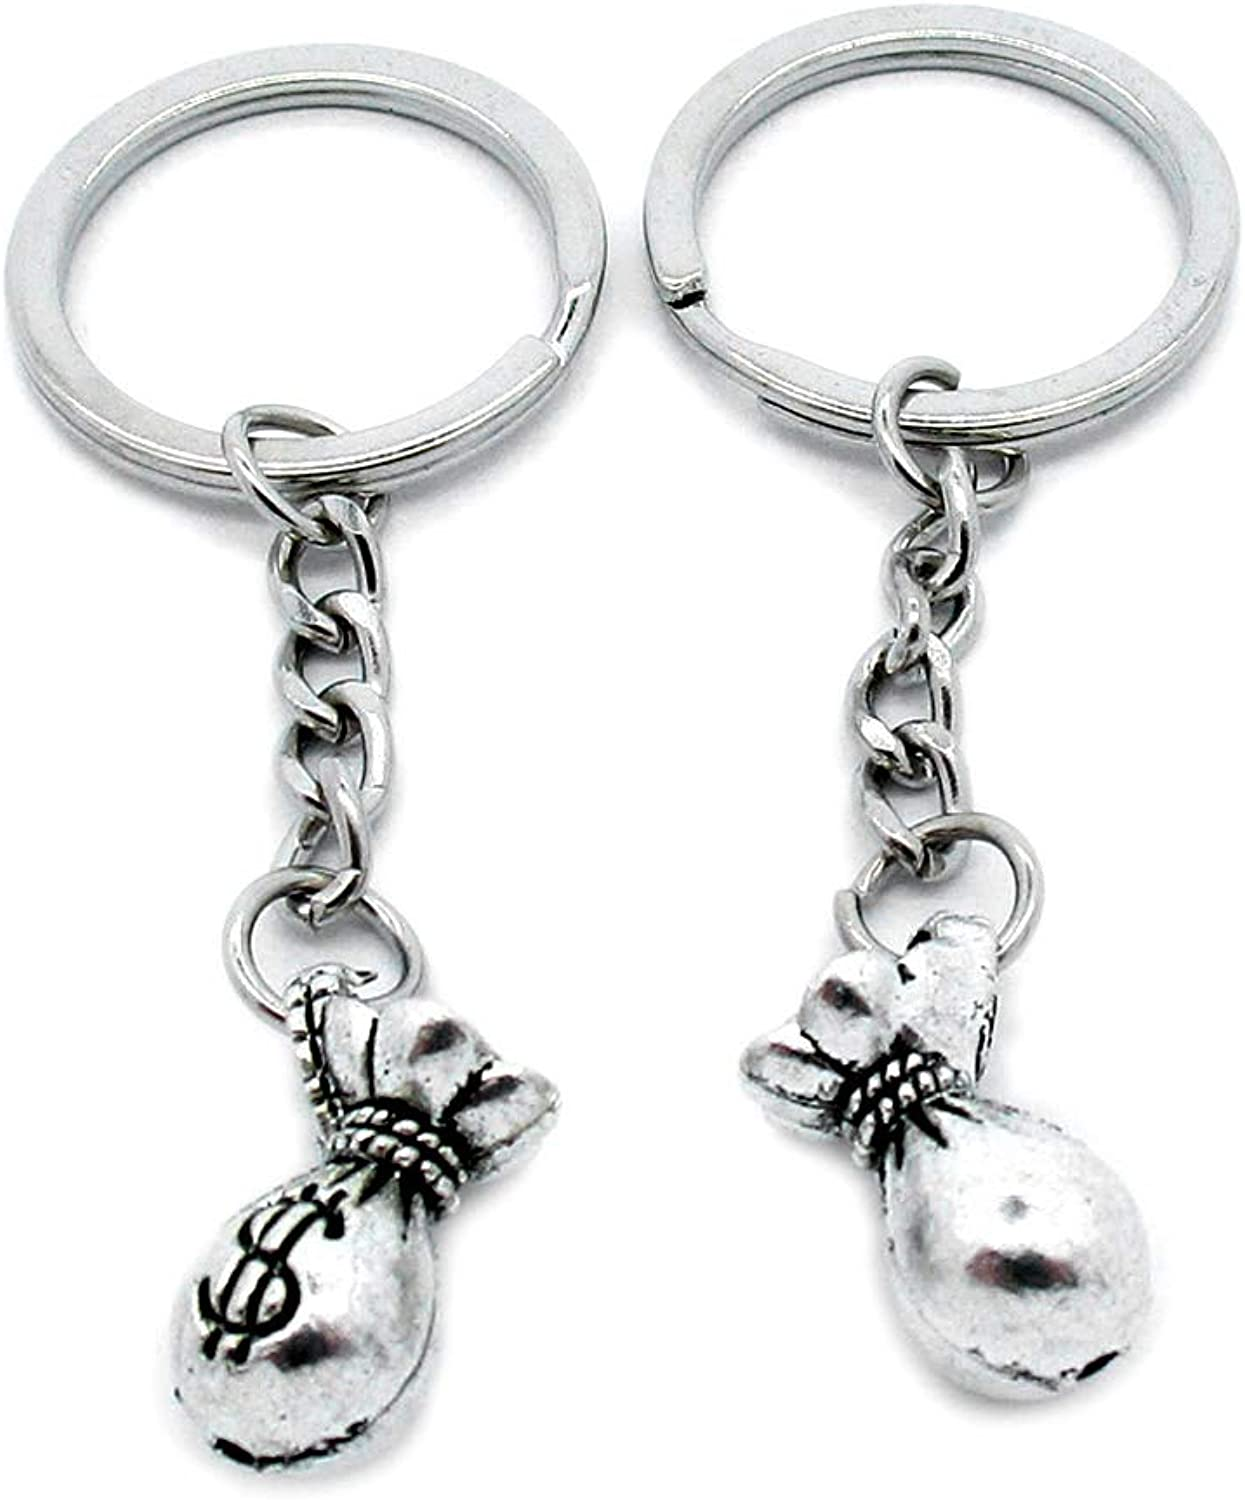 100 PCS Antique Silver Keyrings Keychains Key Ring Chains Tags Clasps AA461 Dollar Purse Money Bag